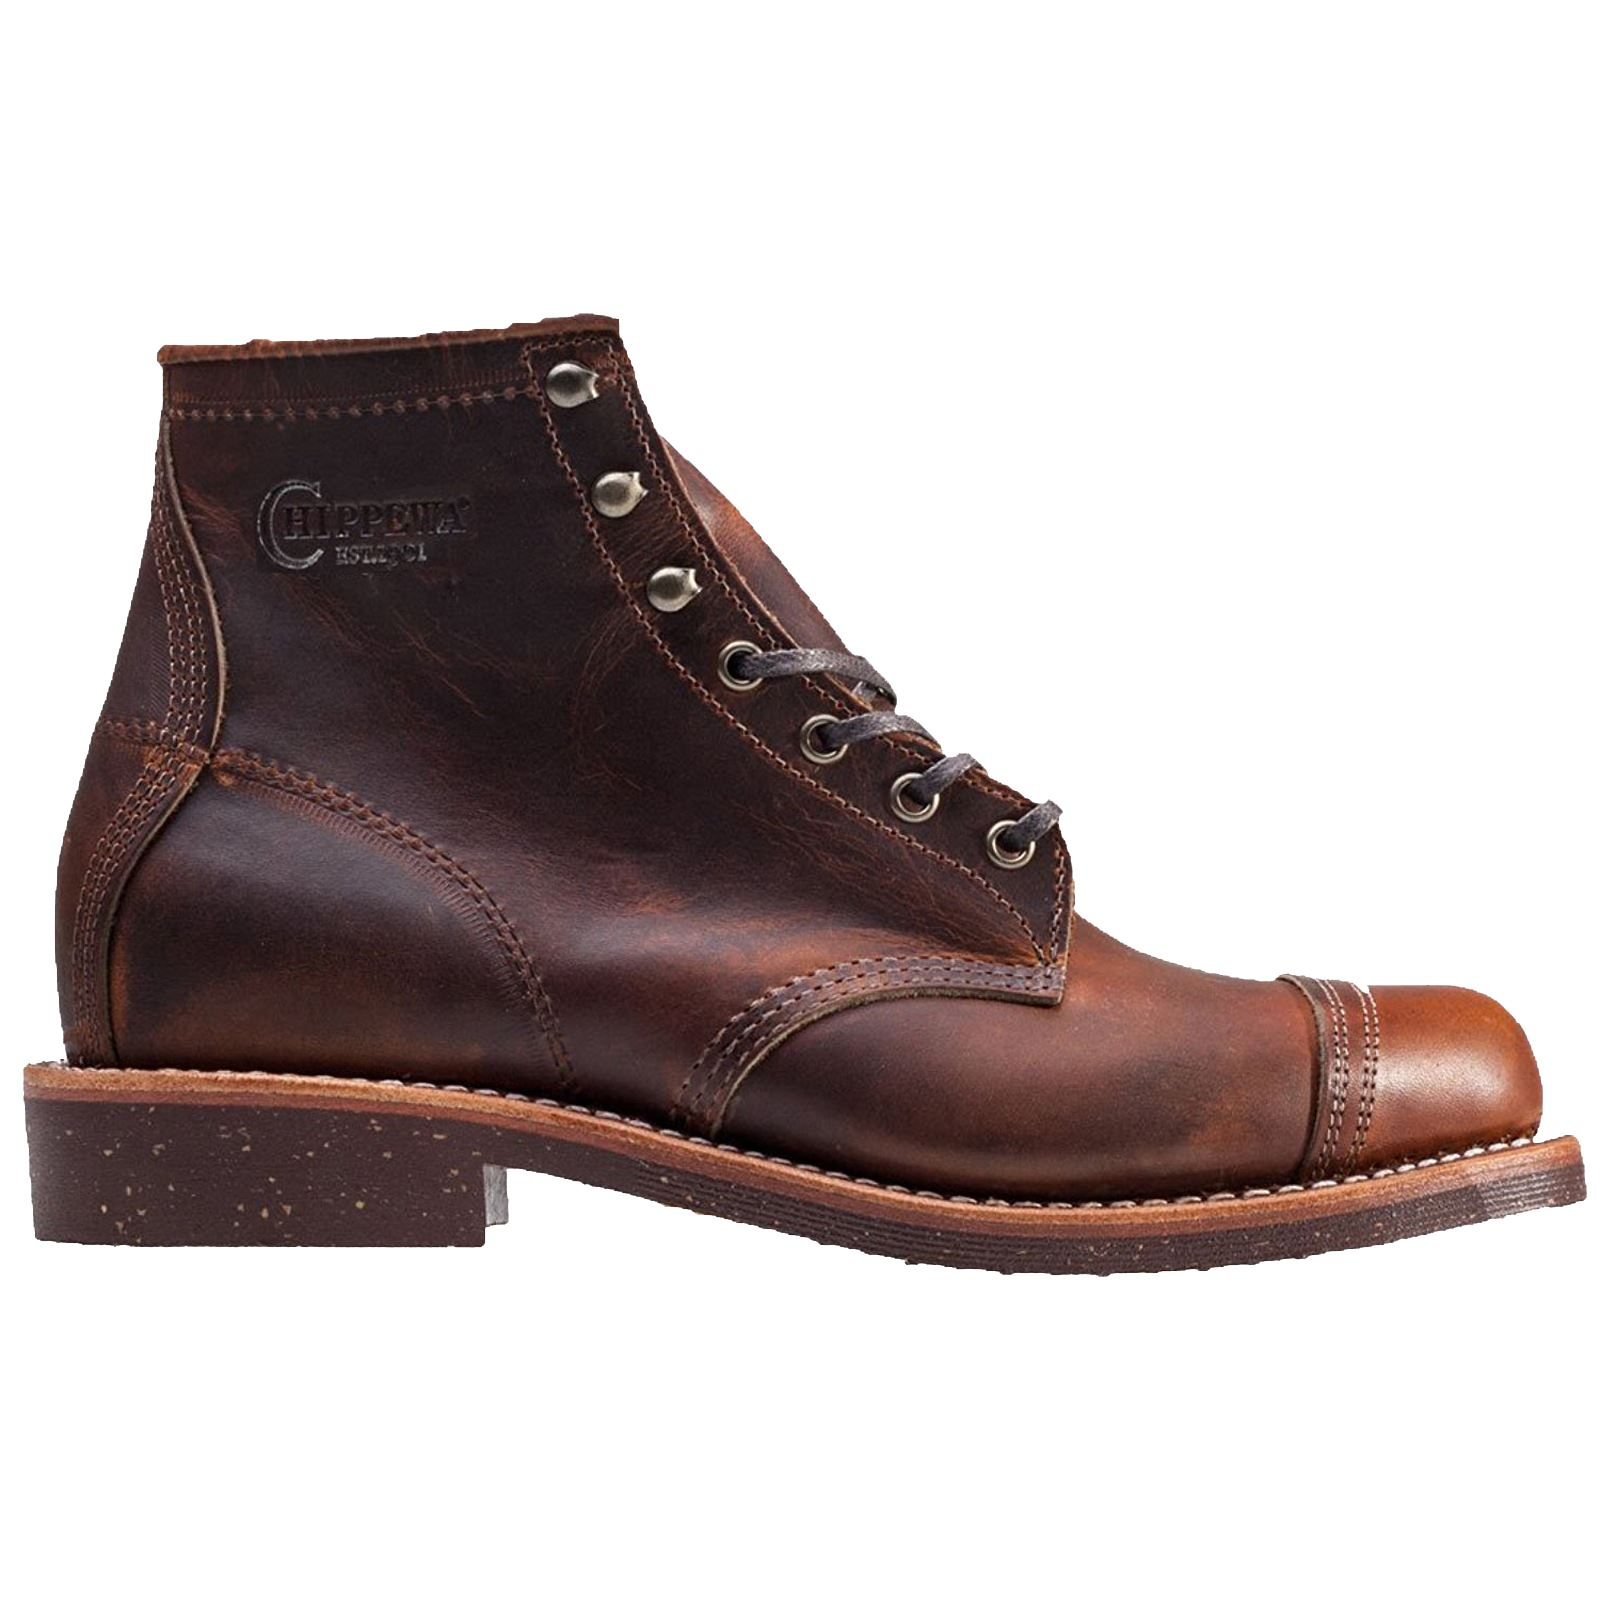 Chippewa 1901g47 Tan Mens Leather Lace Up Ankle Boots Ebay